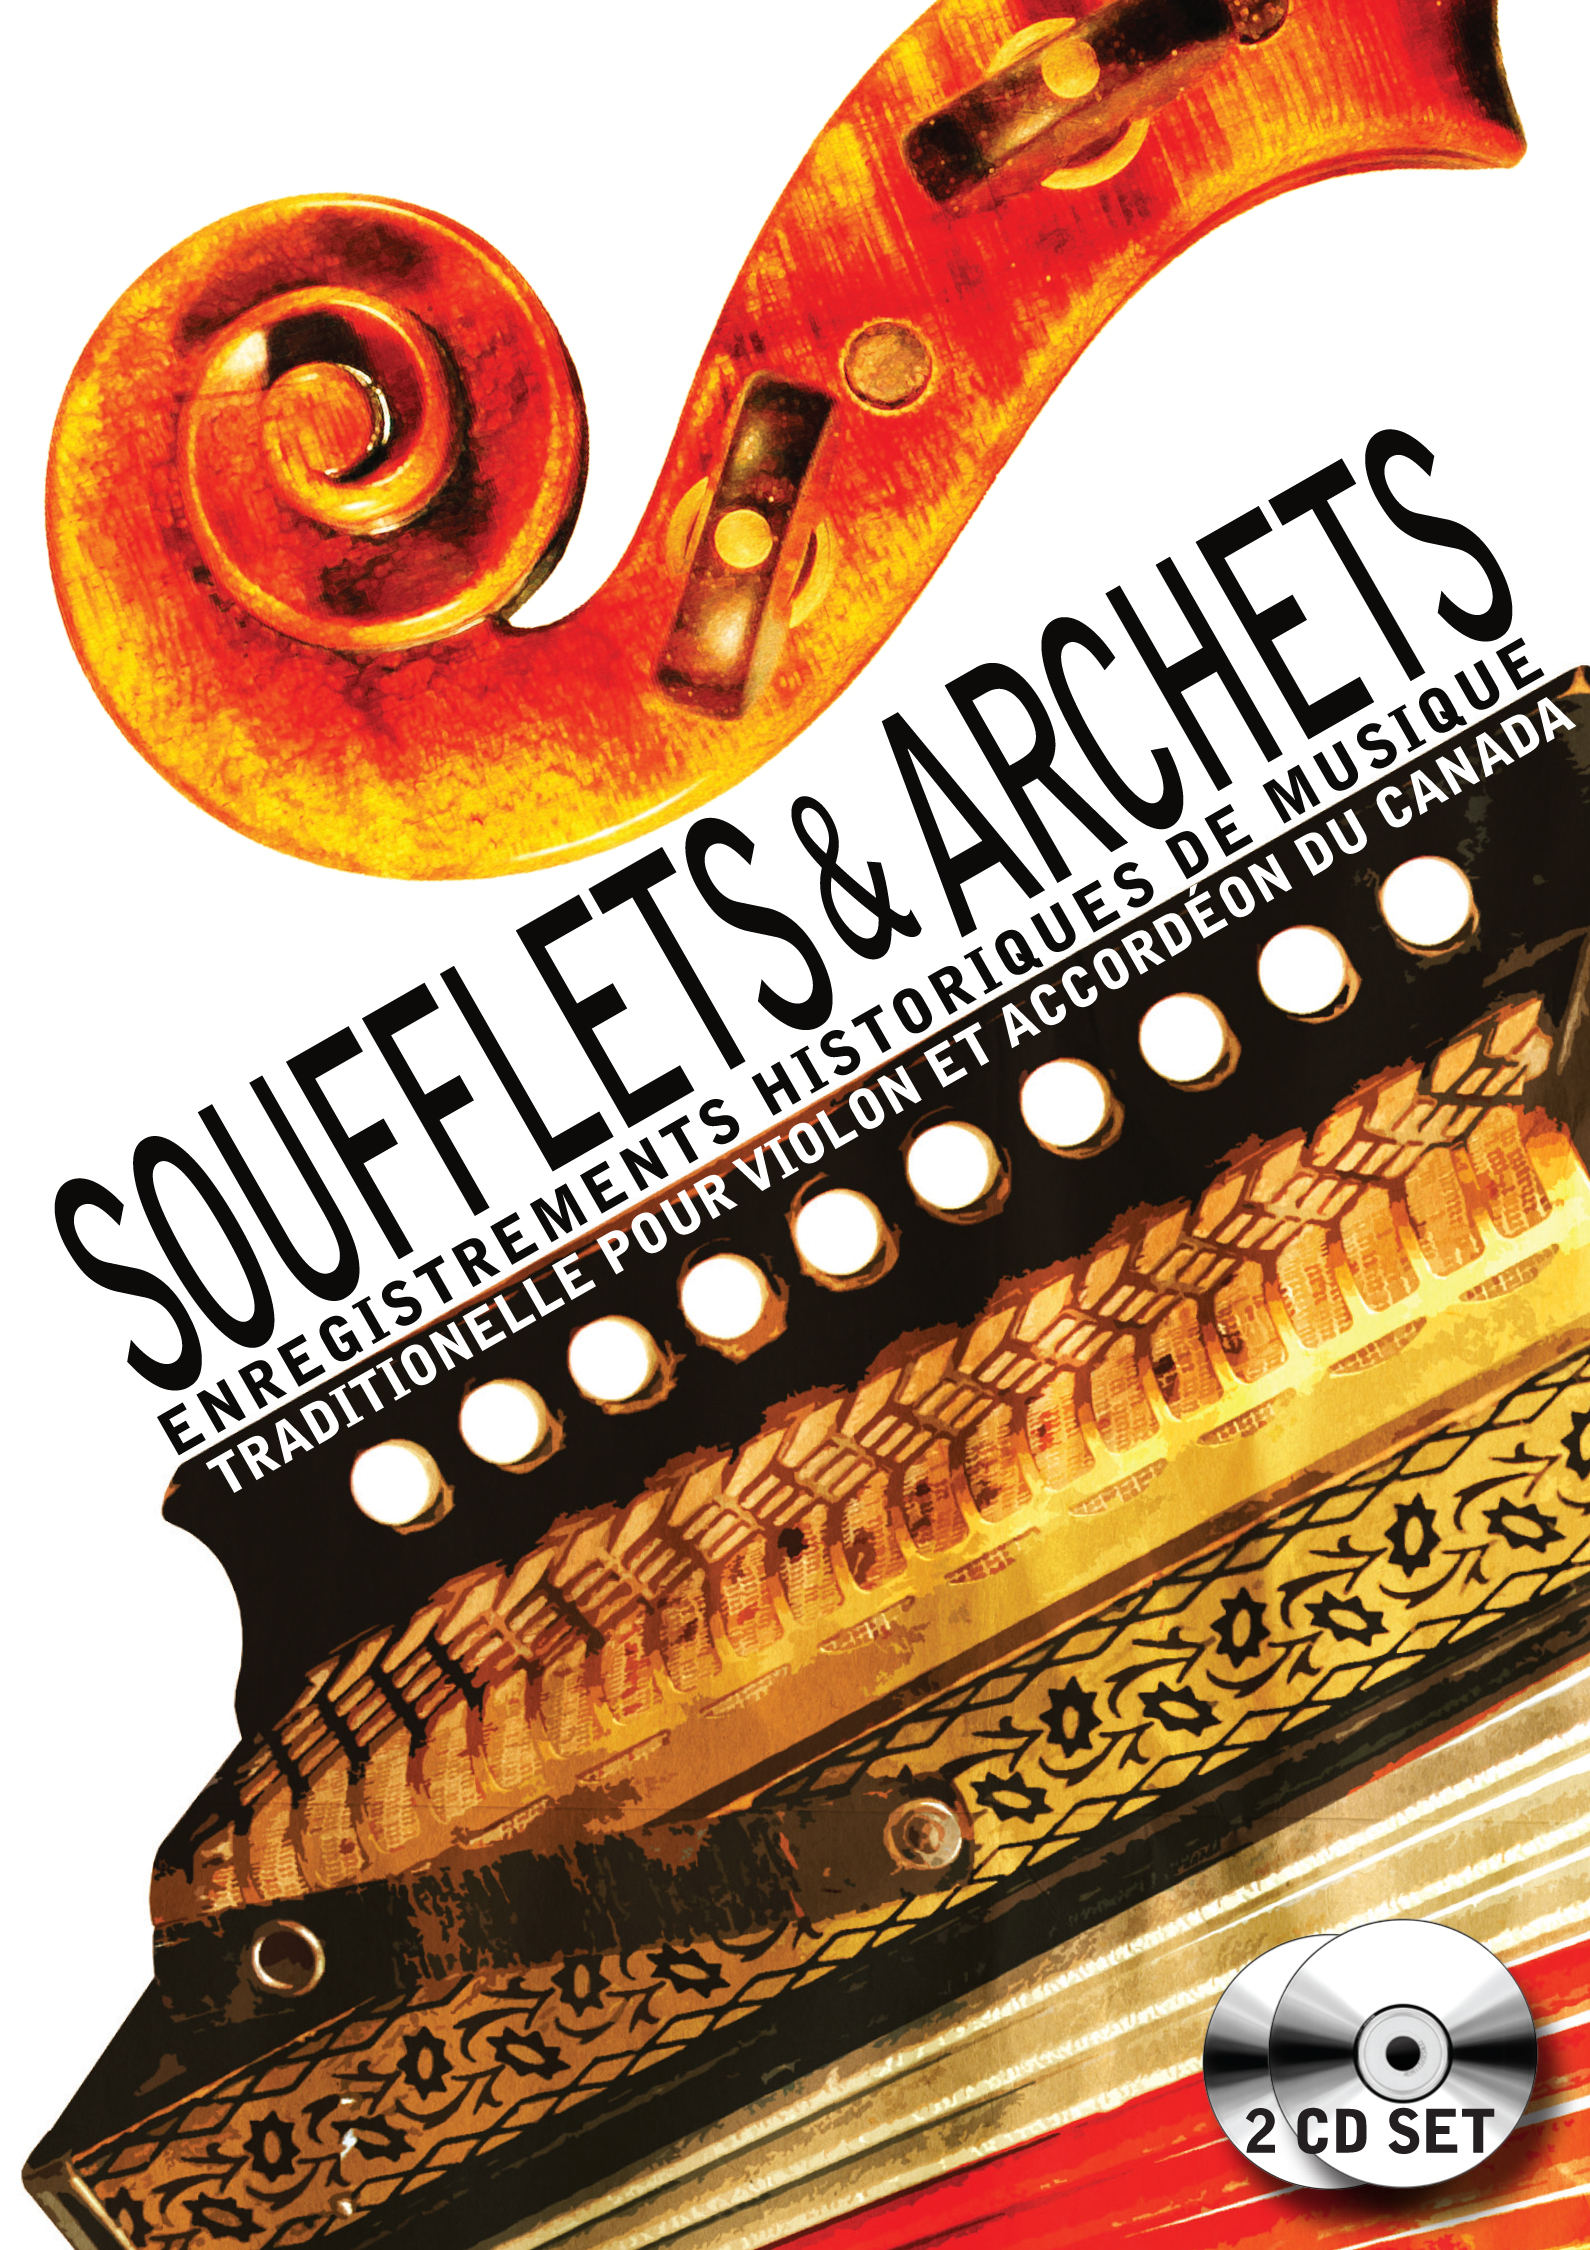 images/new_covers/MMaP-CD07_Soufflets_et_archets_2014.jpg